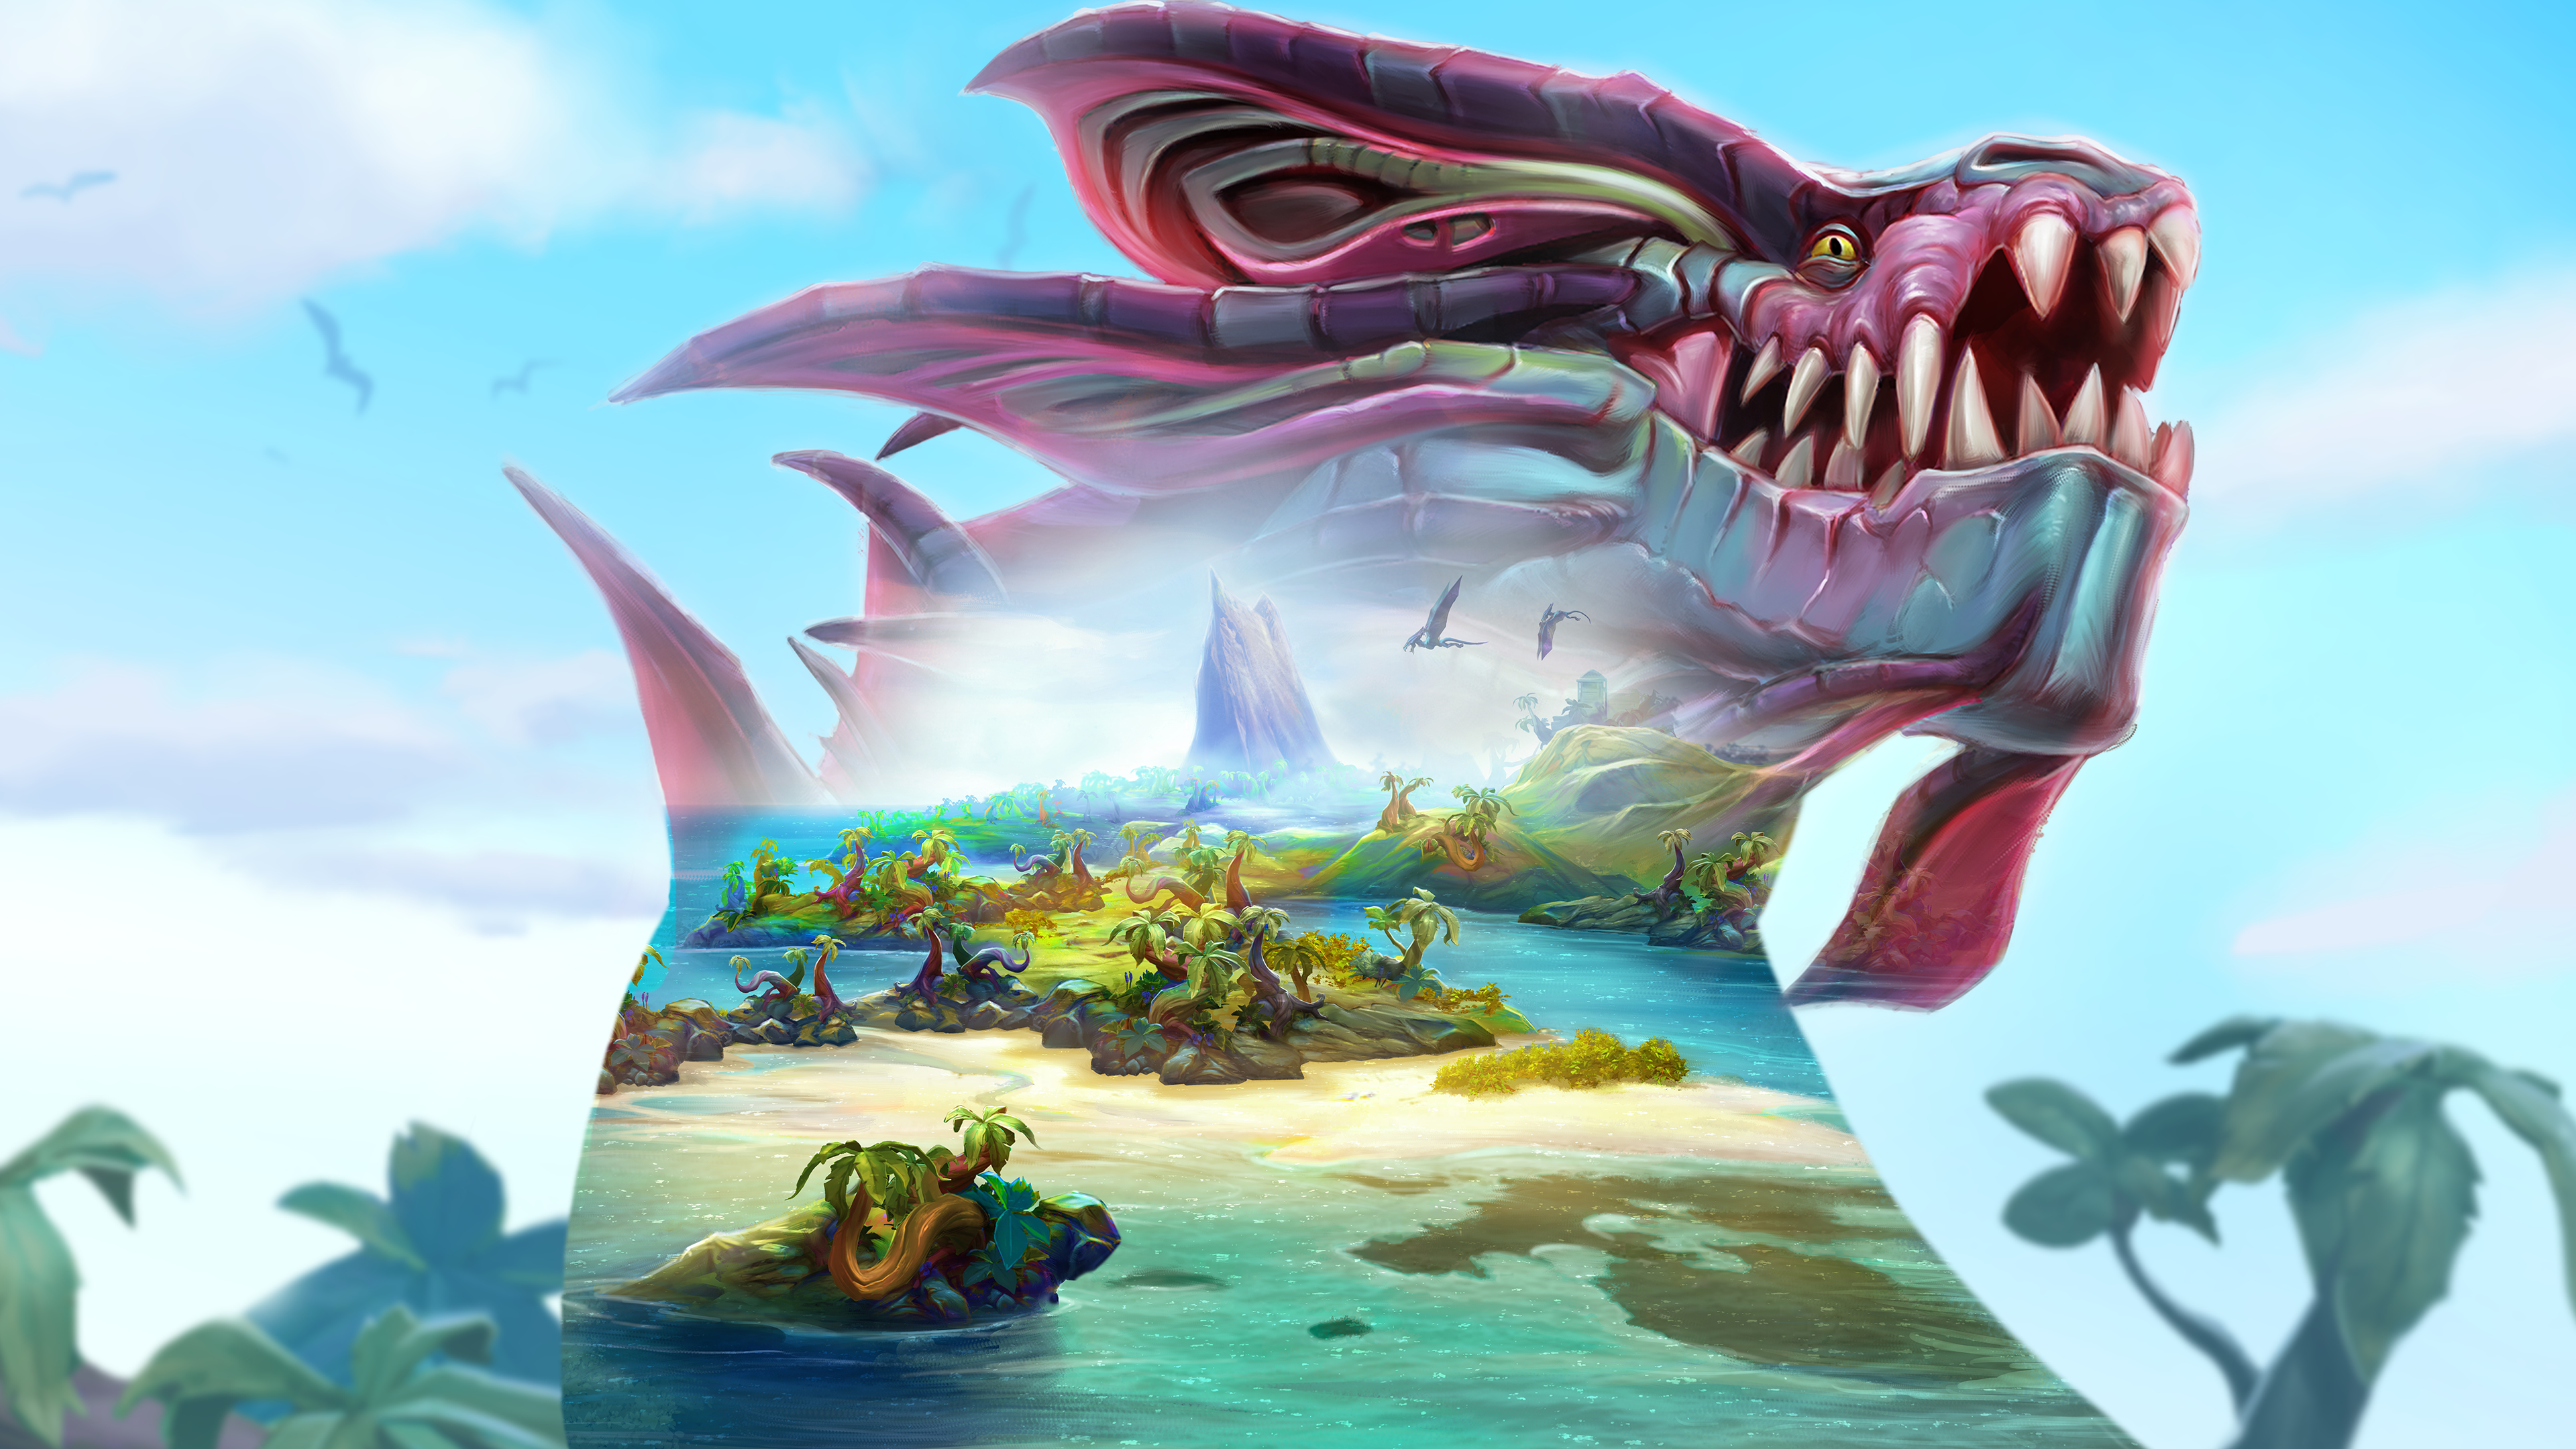 RuneScape The Land out of Time artwork